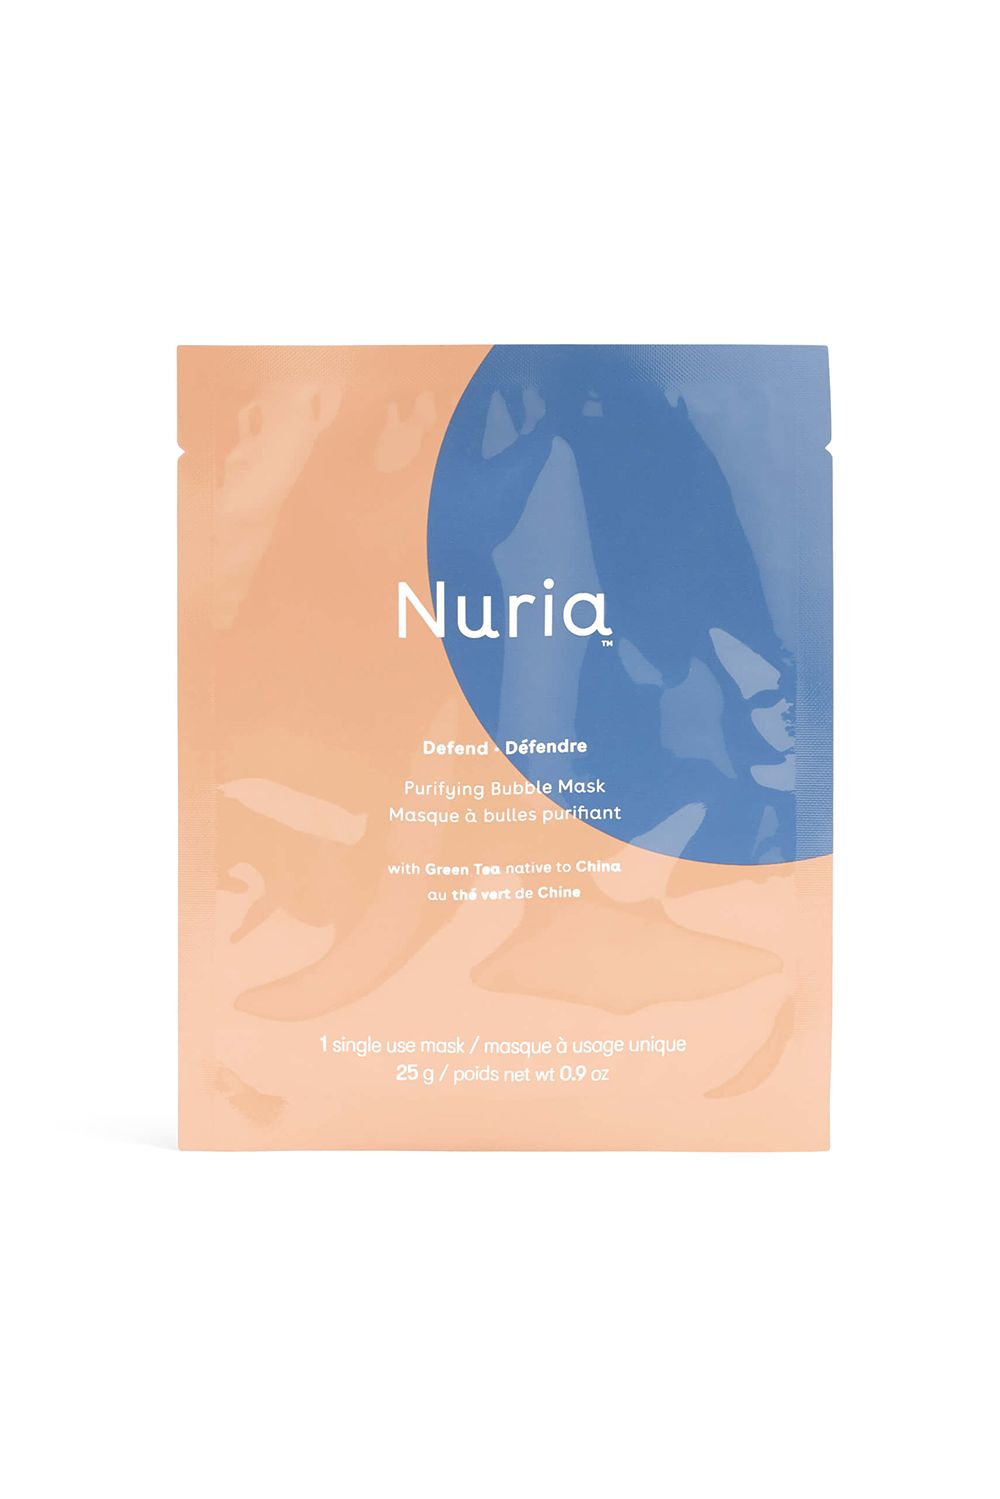 Nuria Defend Purifying Bubble Mask Nuria Defend Purifying Bubble Mask, $10 SHOP IT Half the fun in sheet masks are the experience, ya know? Bubbling sheet masks are more fun—especially when they lift dead skin cells and trapped oil that's been living in your skin for too long.